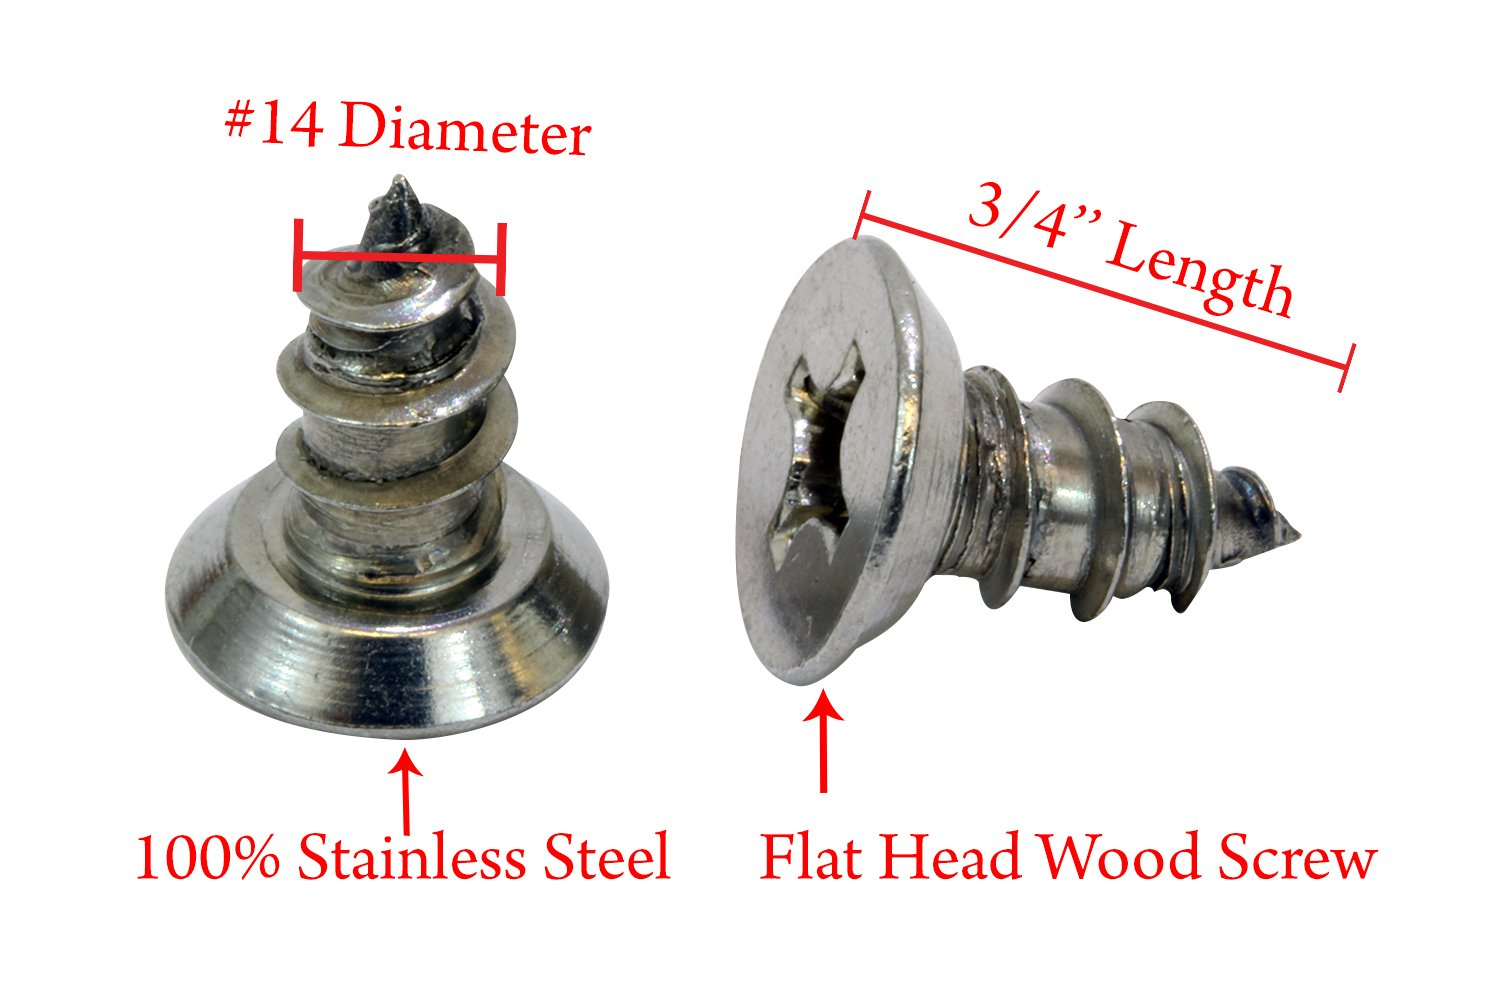 304 #8 x 1-1//2 Stainless Flat Head Phillips Wood Screw 100 pc by Bolt Dropper Stainless Steel Choose Size 18-8